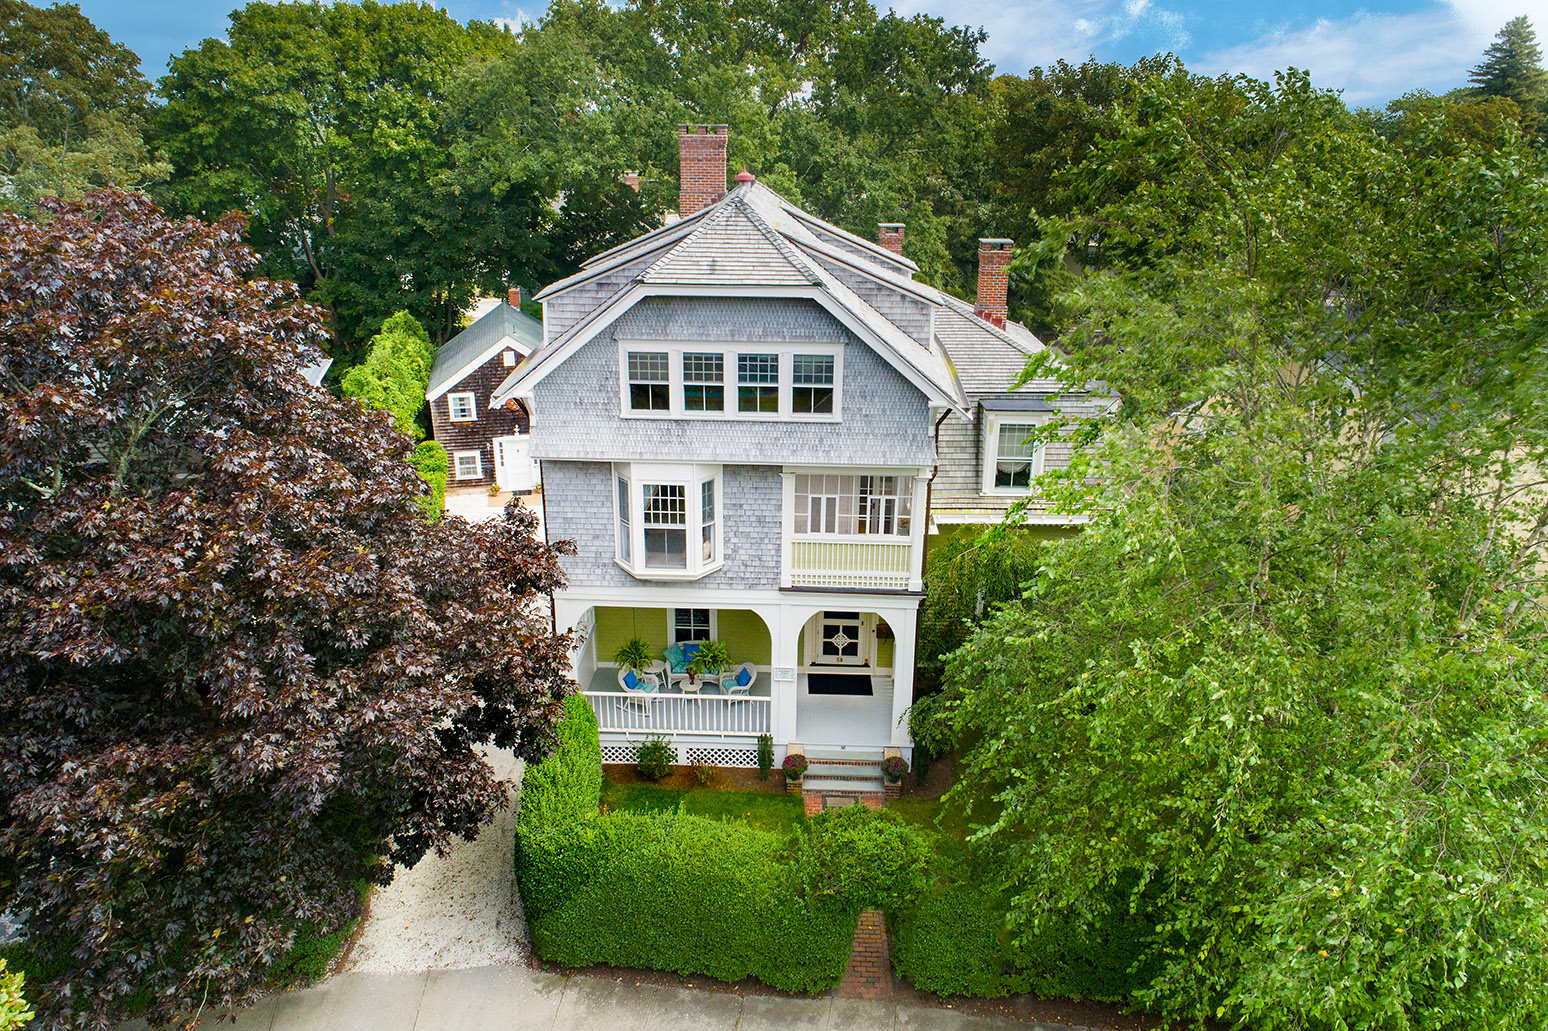 KAY-CATHERINE AREA QUEEN-ANNE STYLE HOME SELLS FOR $1.637M, WITH LILA DELMAN ASSOCIATES REPRESENTING BOTH THE SELLER AND THE BUYER